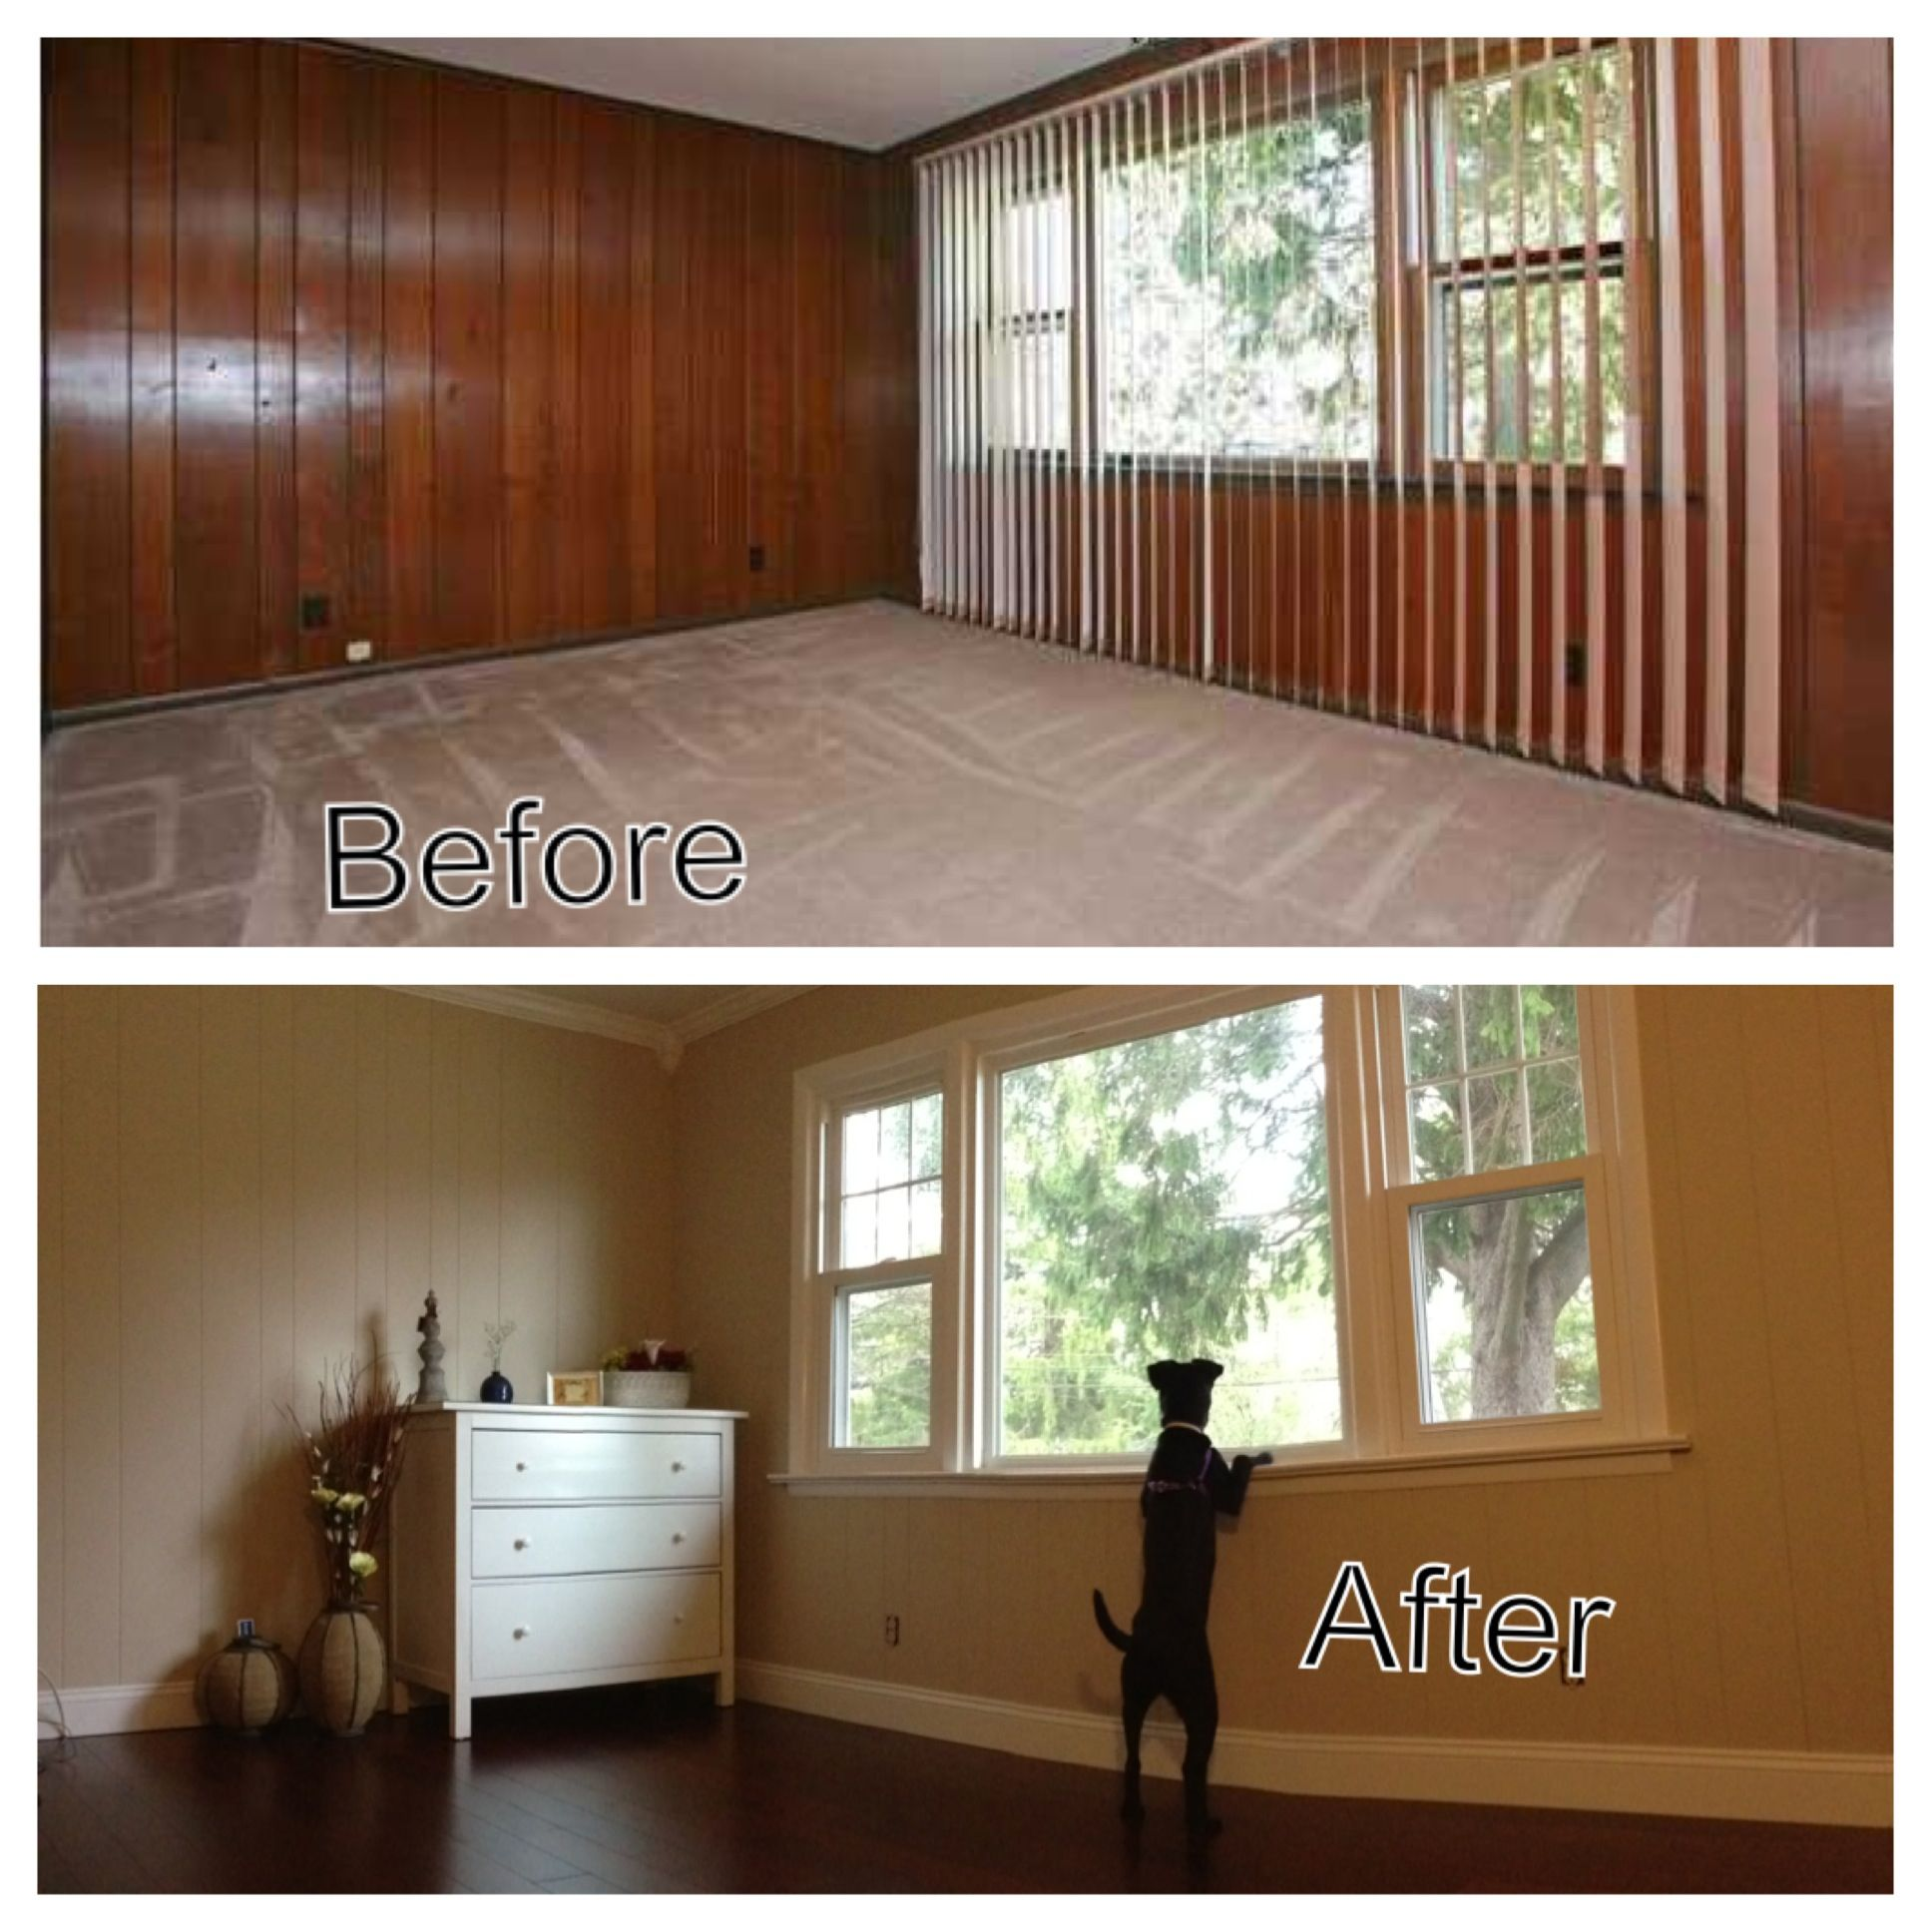 Renovation Ideas Before And After before & after, diy, home renovation- take out those ugly wood